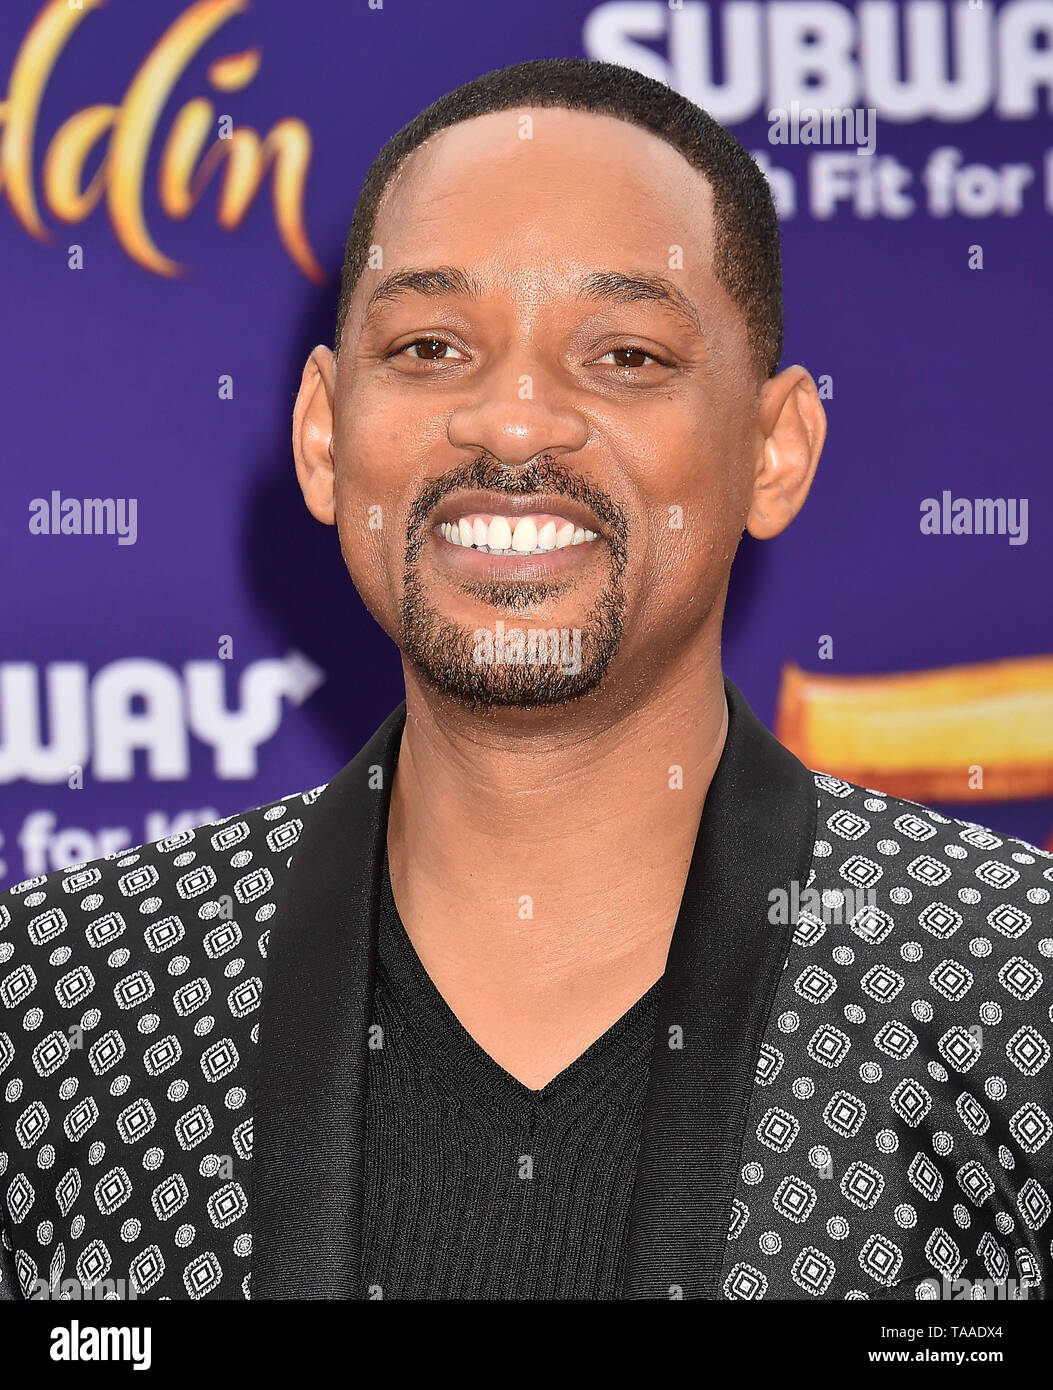 LOS ANGELES, CA - MAY 21: Will Smith attends the premiere of Disney's 'Aladdin' at El Capitan Theatre on May 21, 2019 in Los Angeles, California. - Stock Image